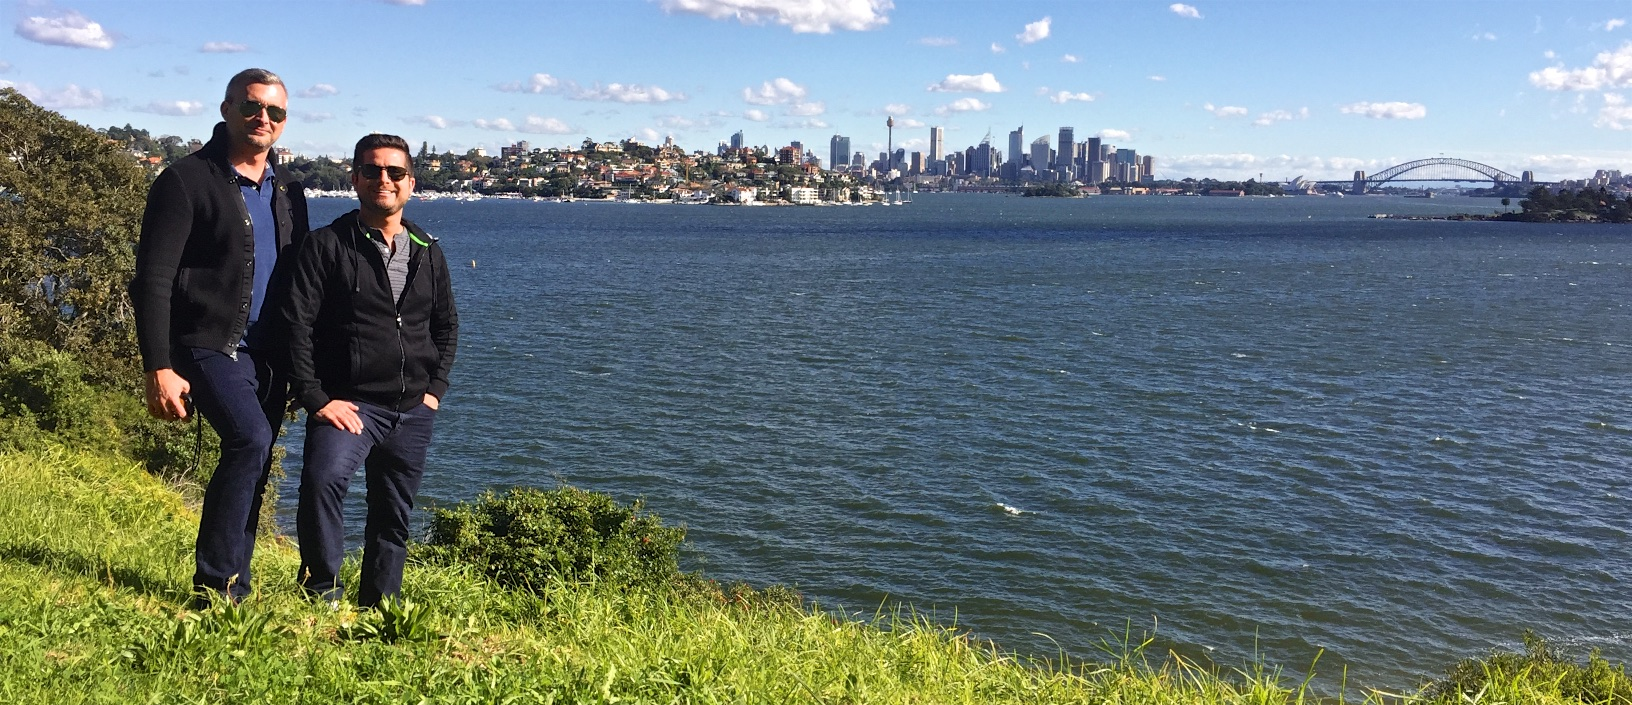 For the birds! – in Sydney